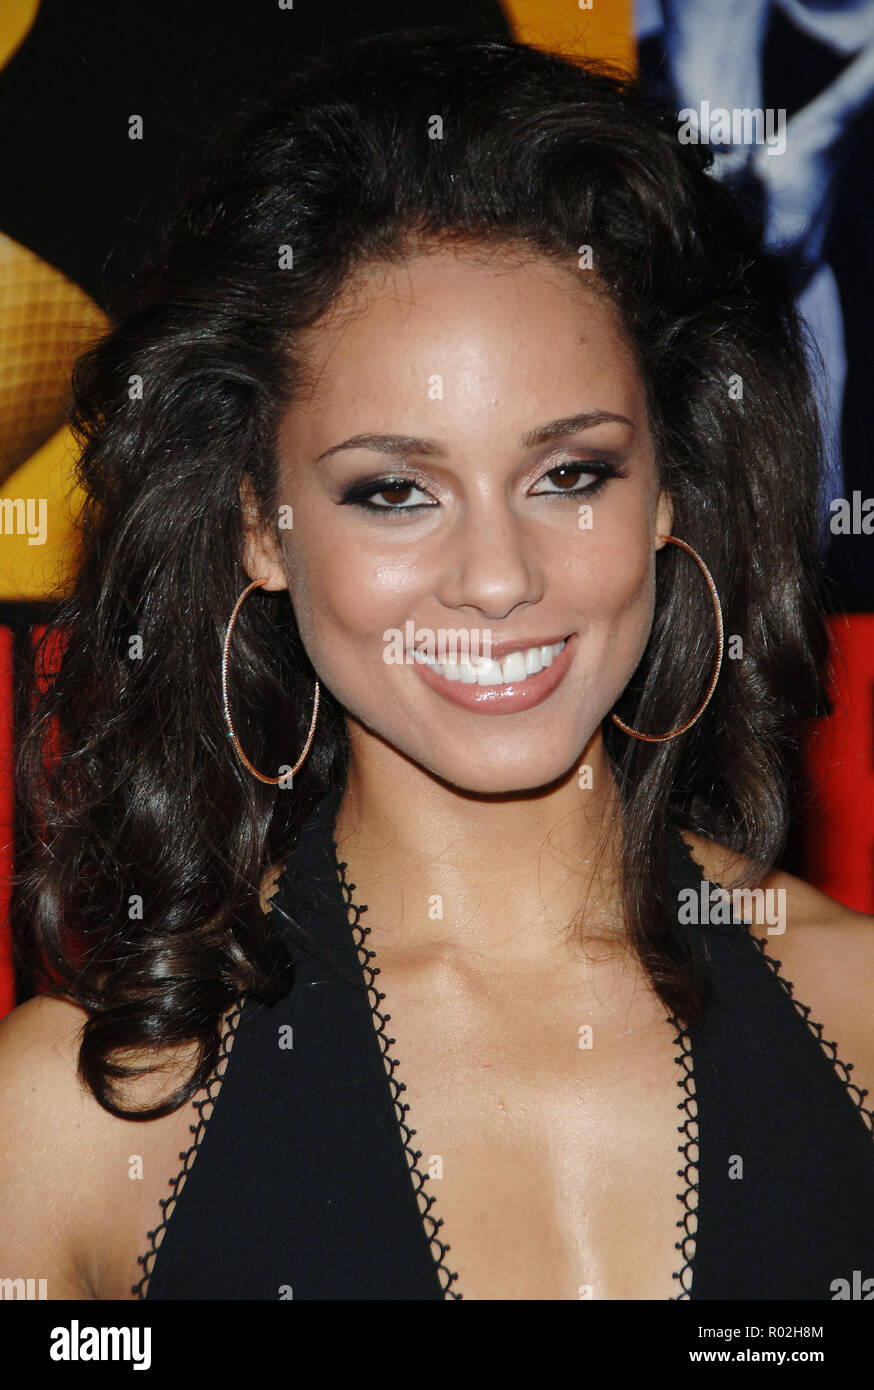 Alicia Keys arriving at the Smokin' Aces at the Chinese Theatre In Los Angeles. January 18, 2007.  eye contact smile portrait headshot KeysAlicia030 Red Carpet Event, Vertical, USA, Film Industry, Celebrities,  Photography, Bestof, Arts Culture and Entertainment, Topix Celebrities fashion /  Vertical, Best of, Event in Hollywood Life - California,  Red Carpet and backstage, USA, Film Industry, Celebrities,  movie celebrities, TV celebrities, Music celebrities, Photography, Bestof, Arts Culture and Entertainment,  Topix, headshot, vertical, one person,, from the year , 2007, inquiry tsuni@Gamma Stock Photo